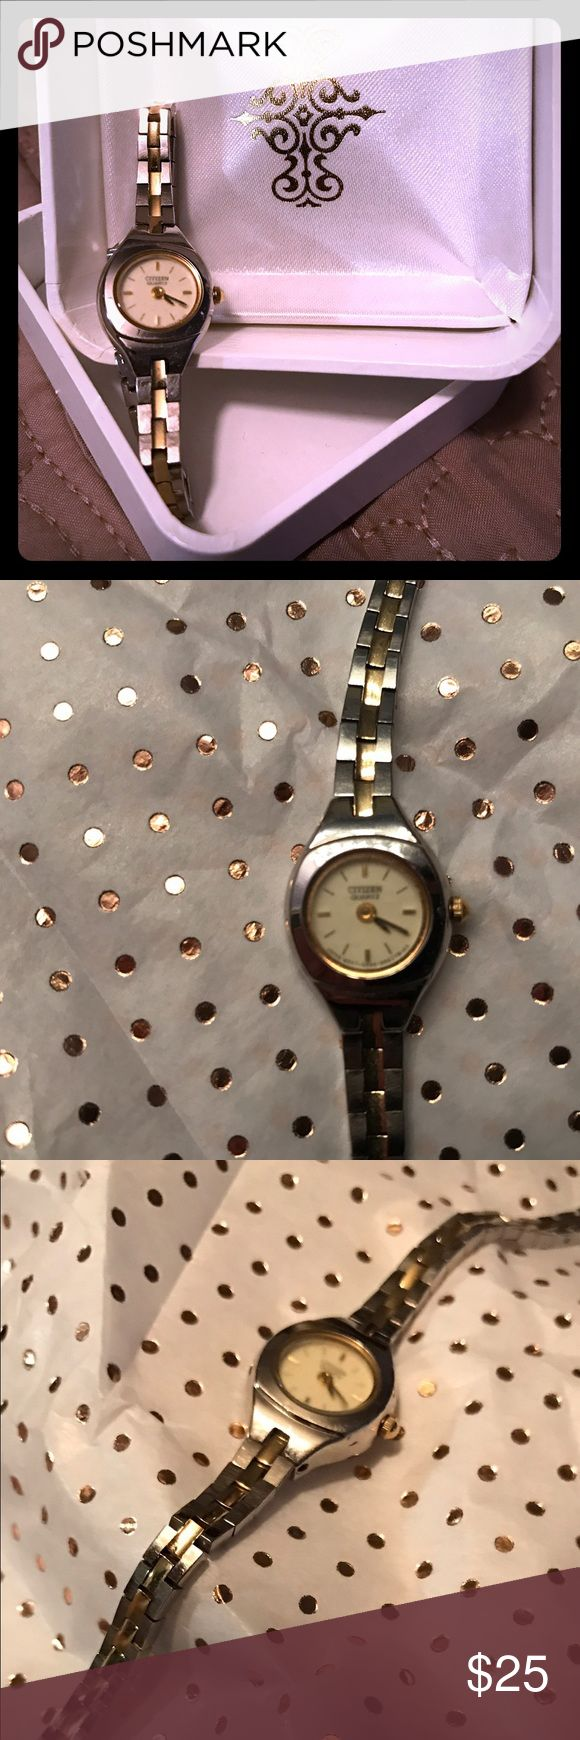 Citizen Ladies Watch Citizen Ladies Watch, Gold and Silver band and face.  glass face is a little blurred, but time is still legible Citizen Accessories Watches